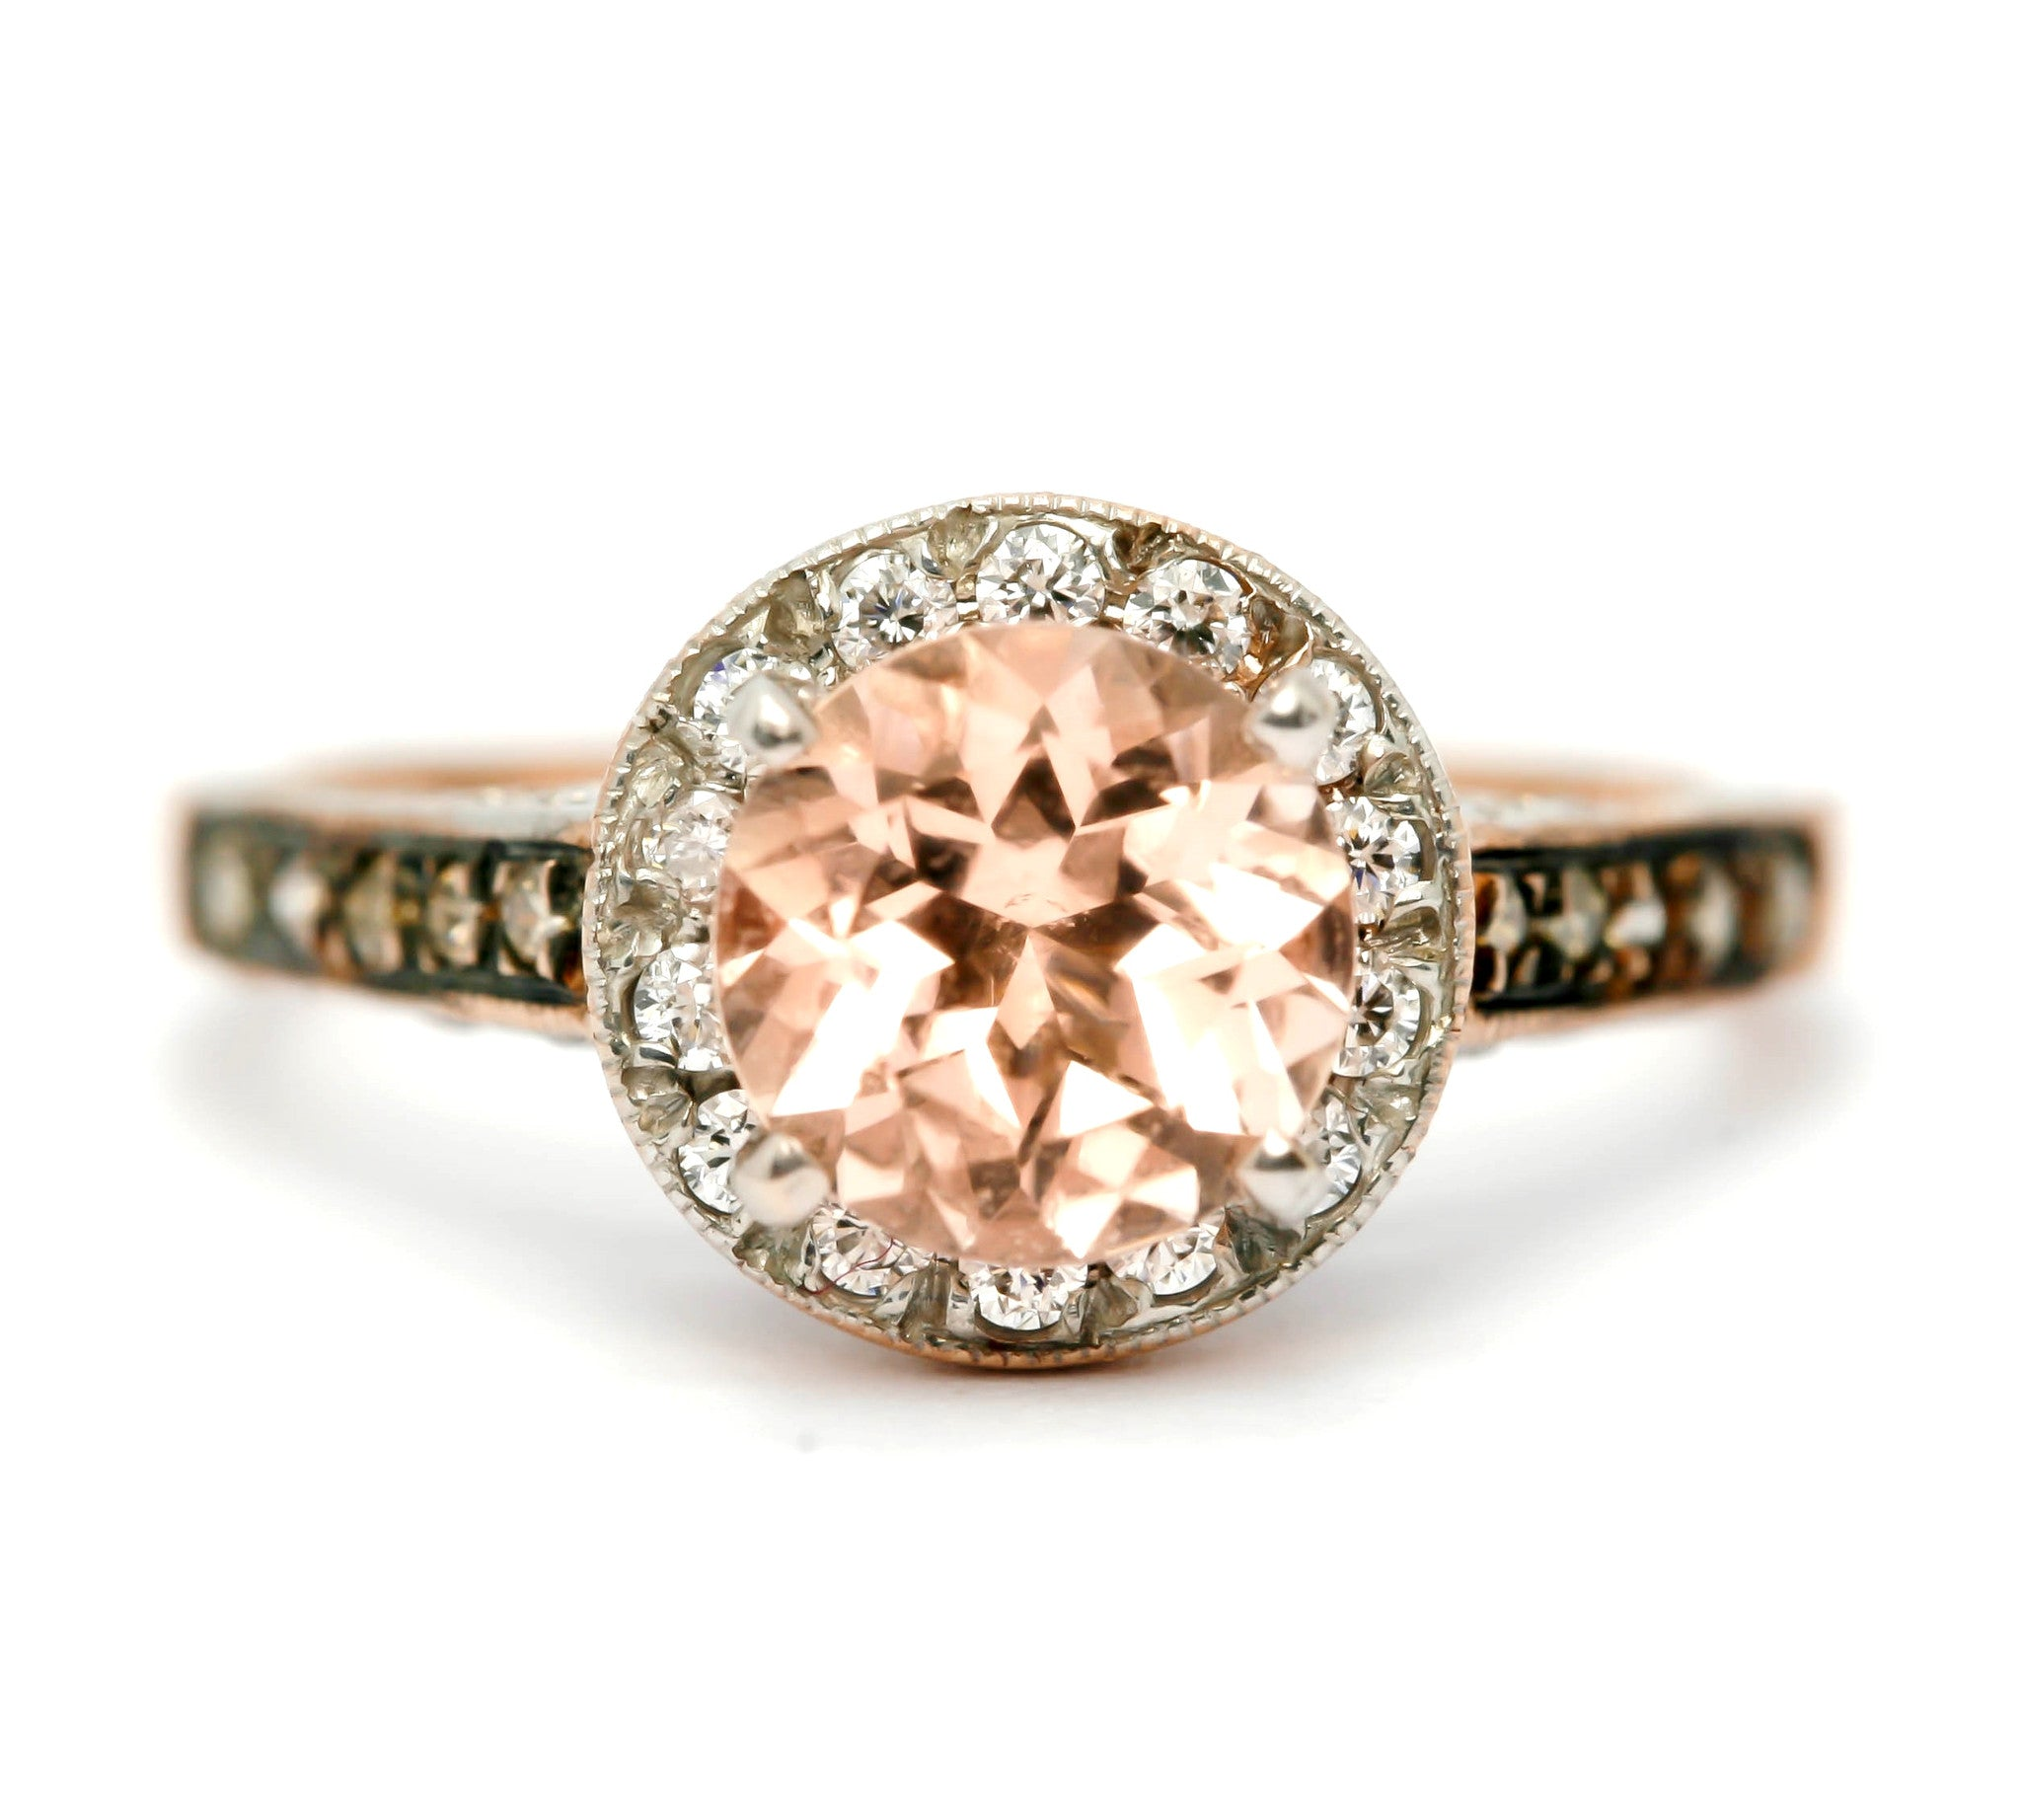 Morganite Engagement Ring, Unique 1 Carat Floating Halo Rose Gold, White & Chocolate Brown Diamonds, Anniversary Ring MG94613